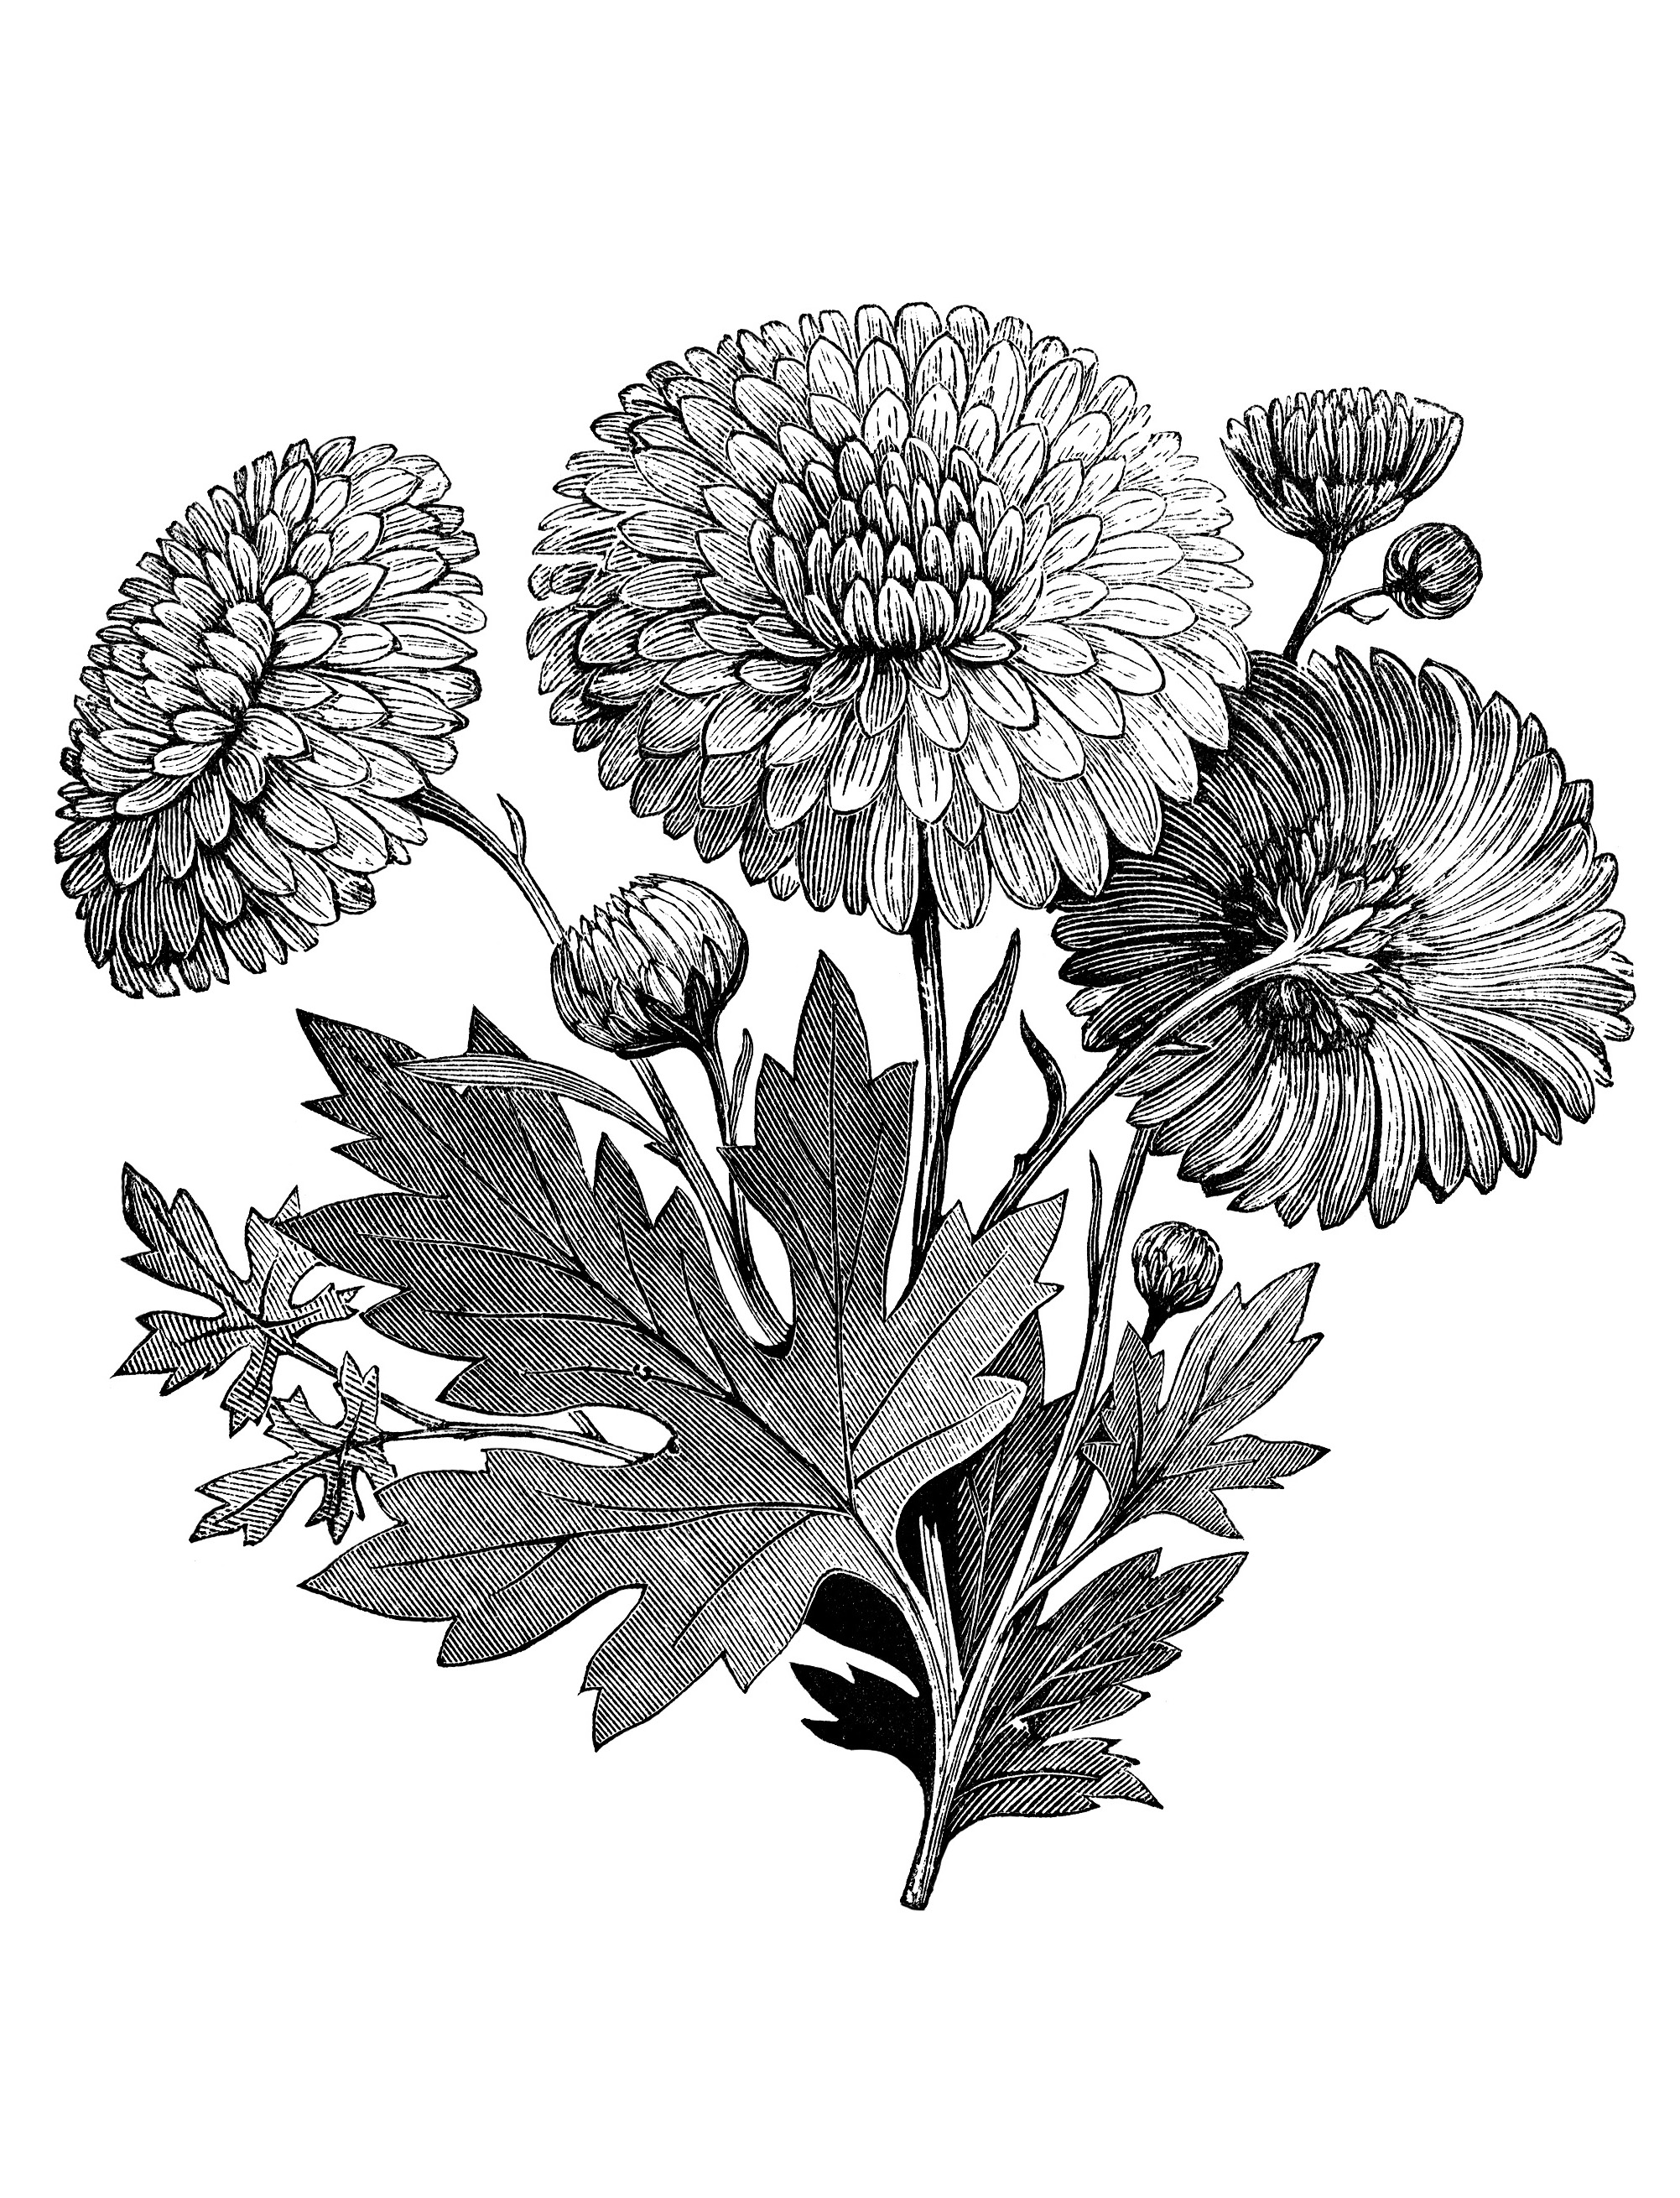 coloring flower clipart black and white spring flowers clipart black and white free download on coloring white black and clipart flower